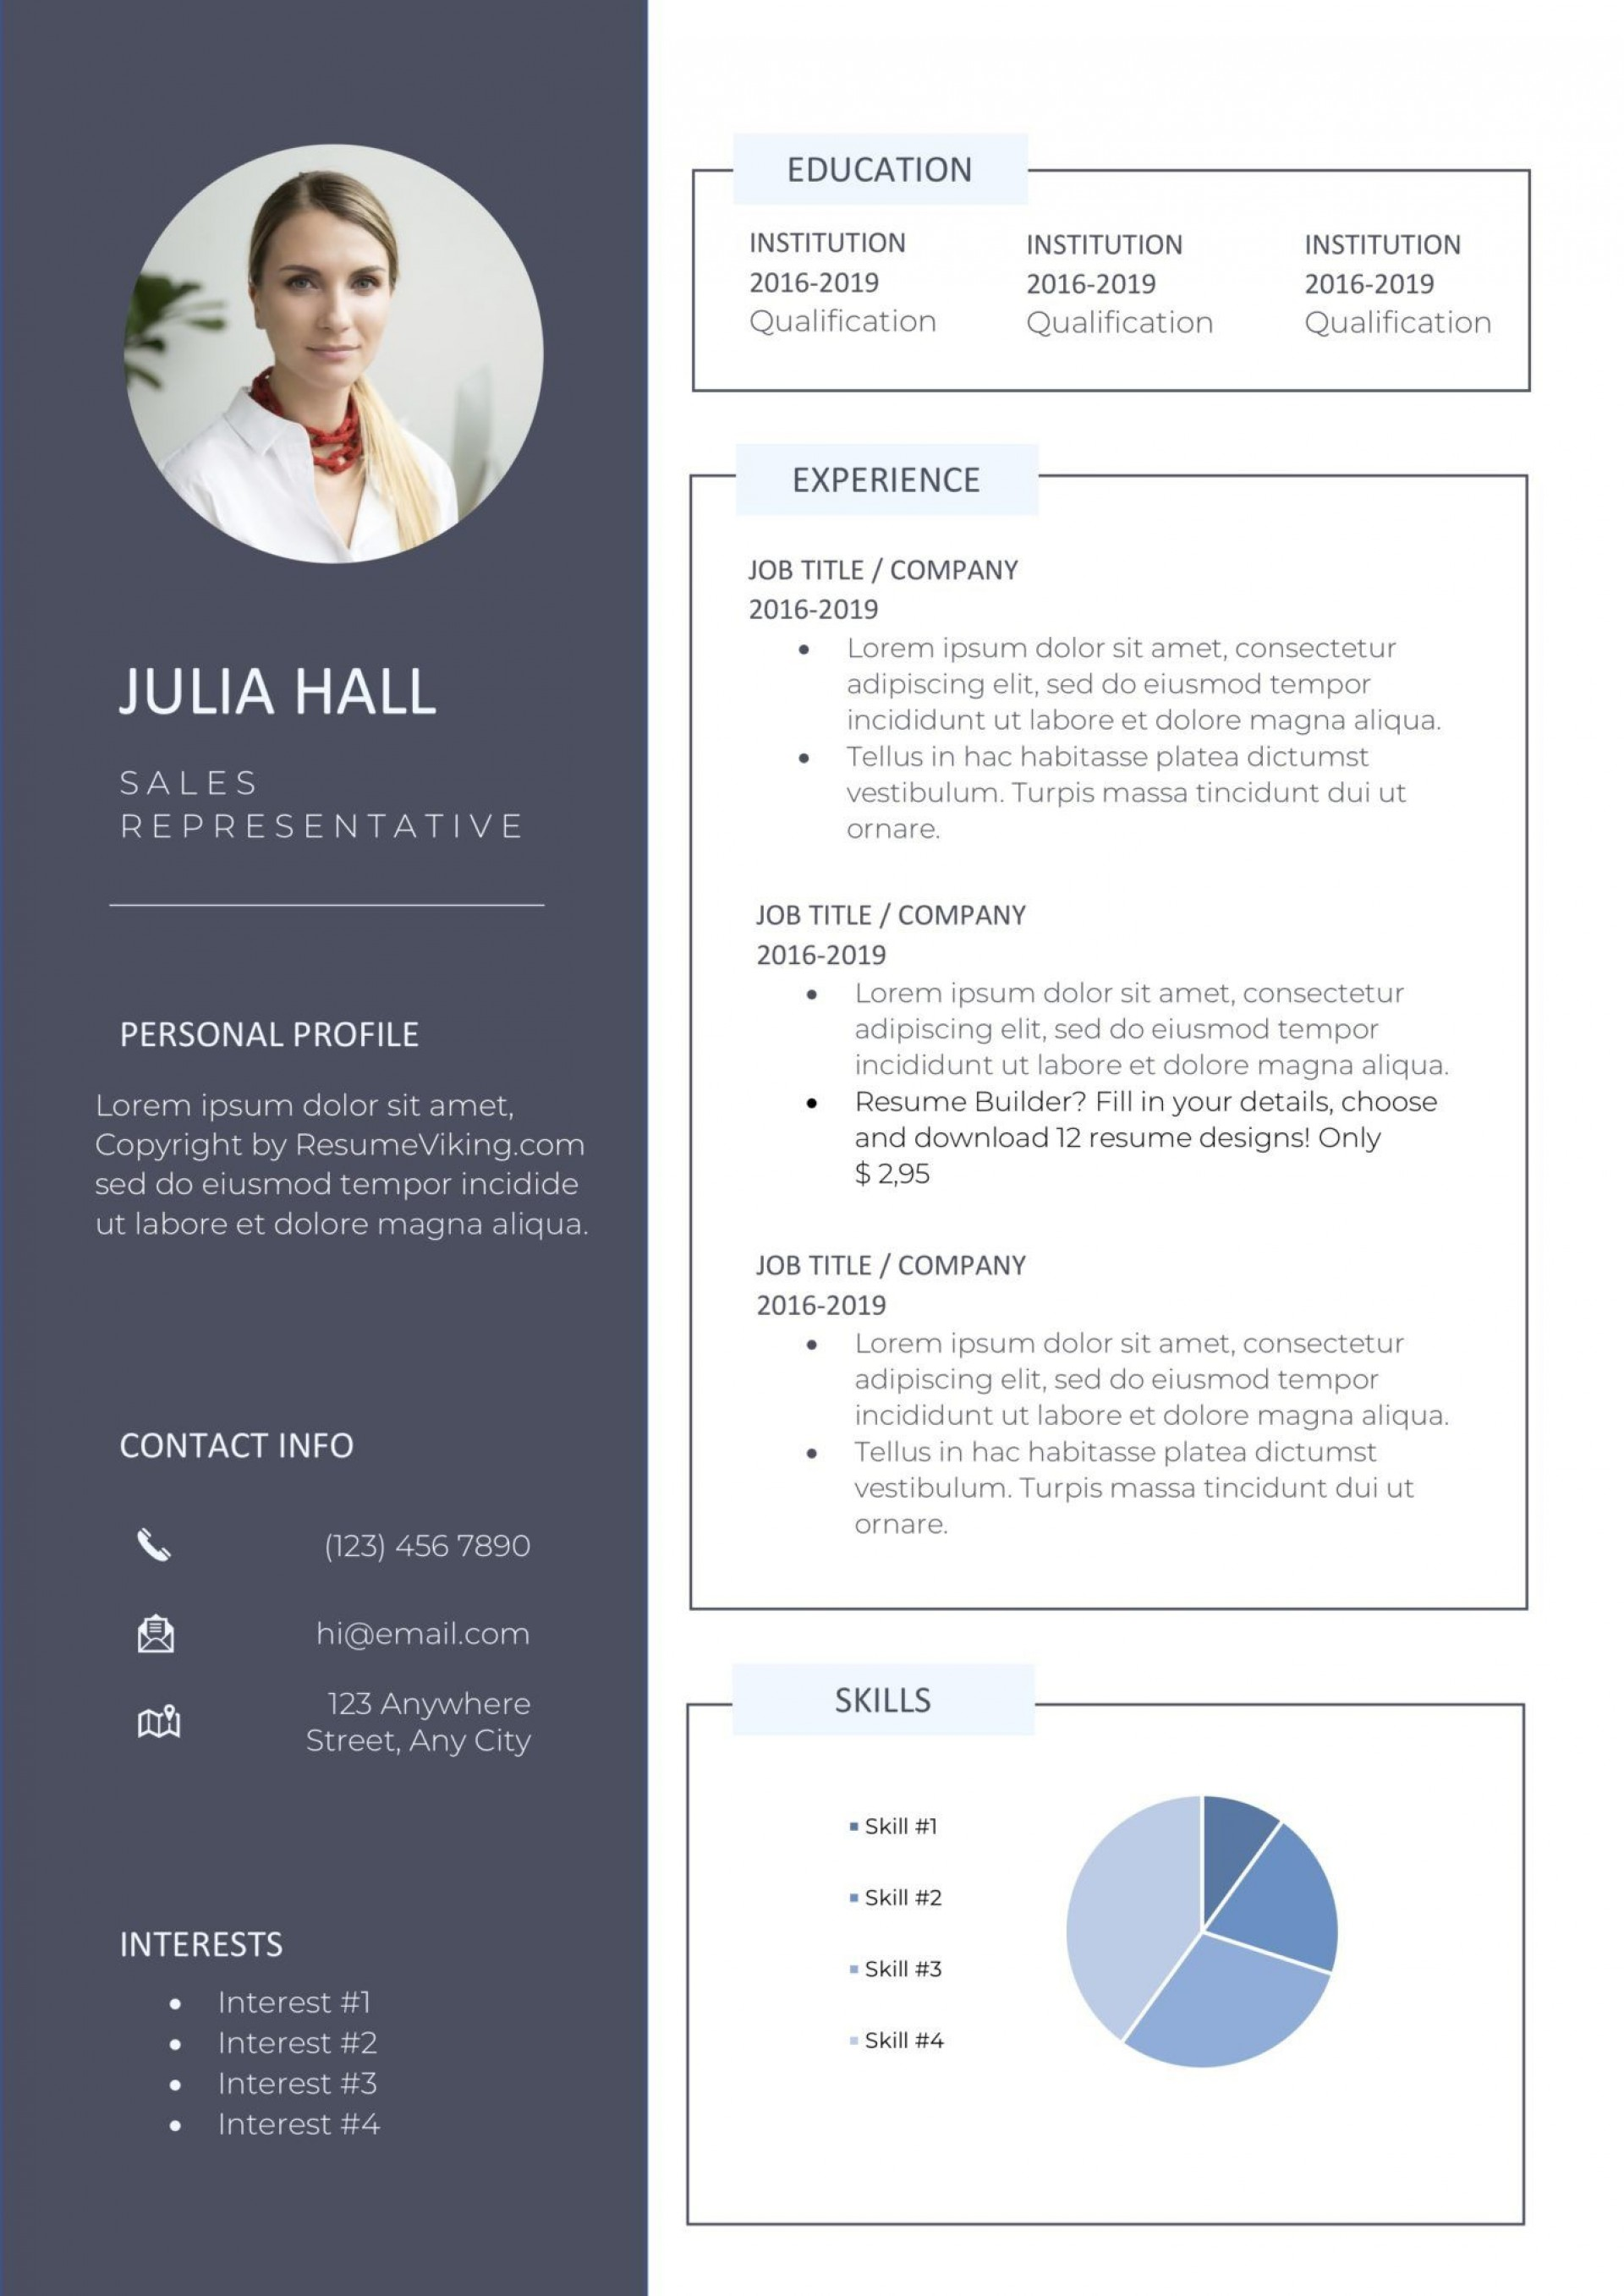 012 Unique Cv Template Free Download Word Doc High Def  Editable Document For Fresher Student Engineer1920